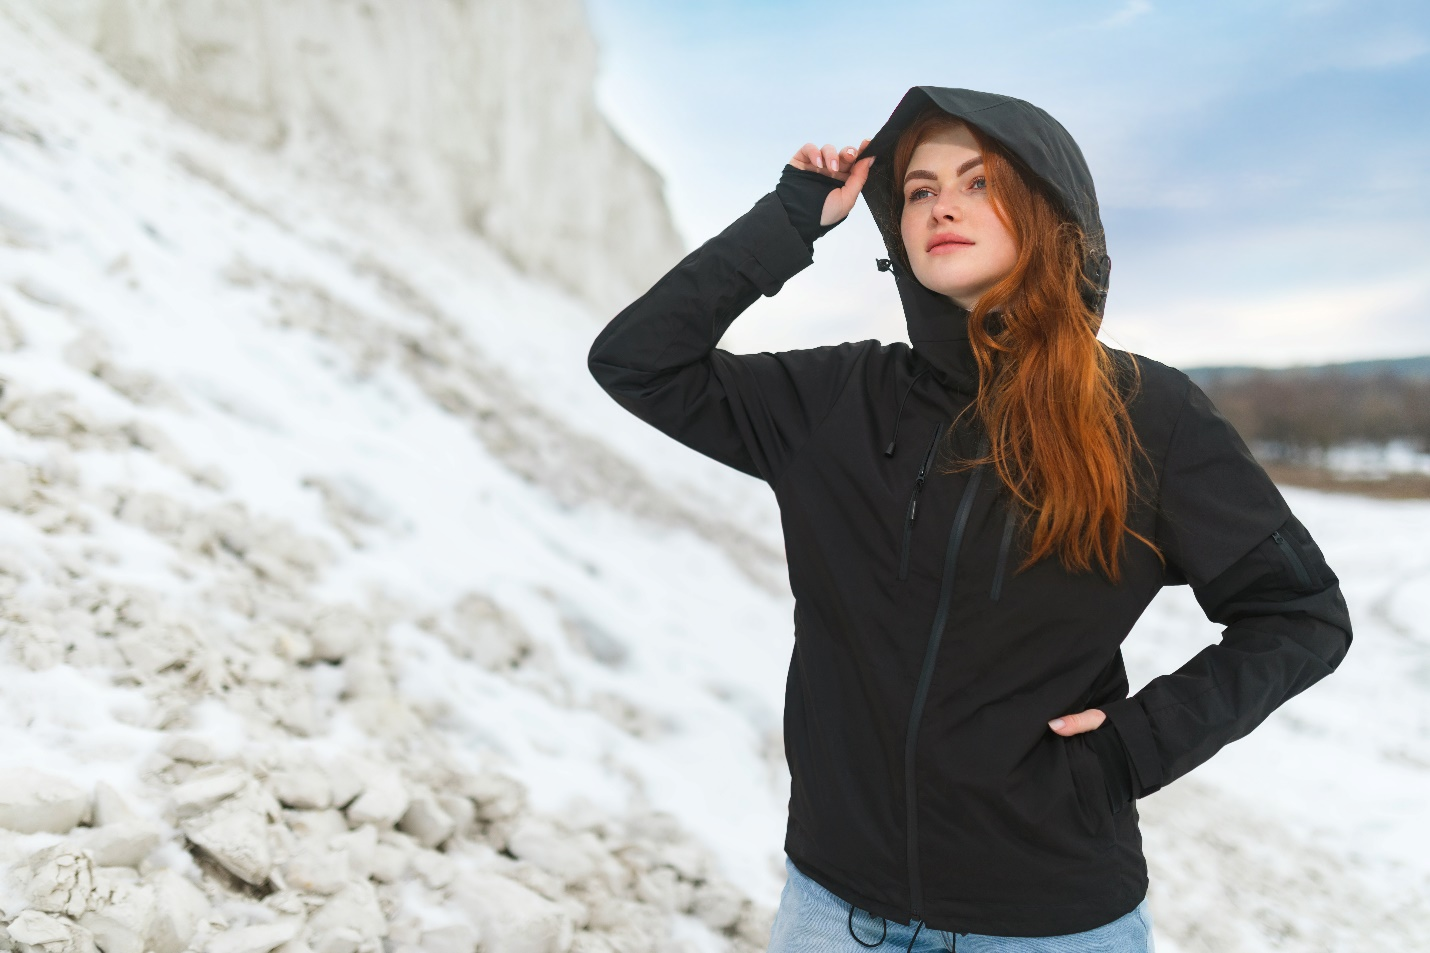 A person standing on a snowy mountain  Description automatically generated with low confidence